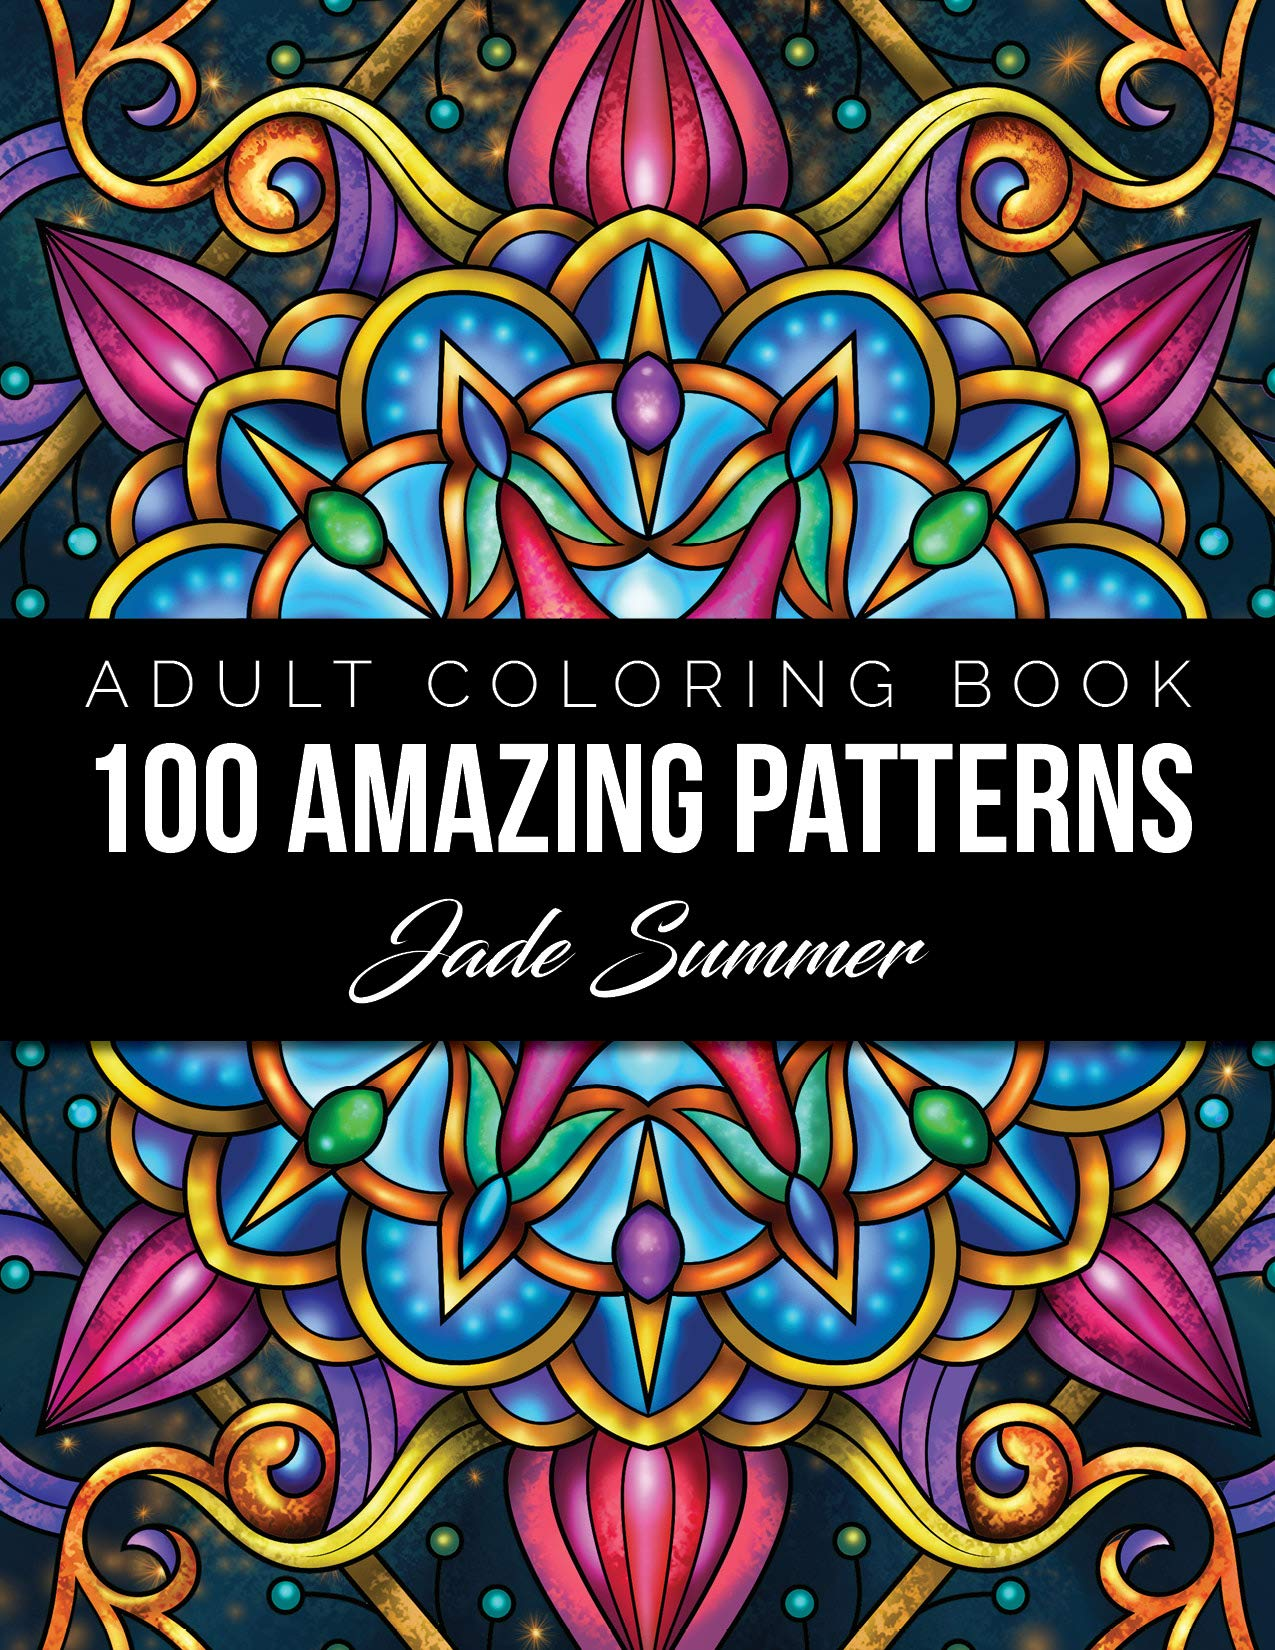 - 100 Amazing Patterns: An Adult Coloring Book With Fun, Easy, And